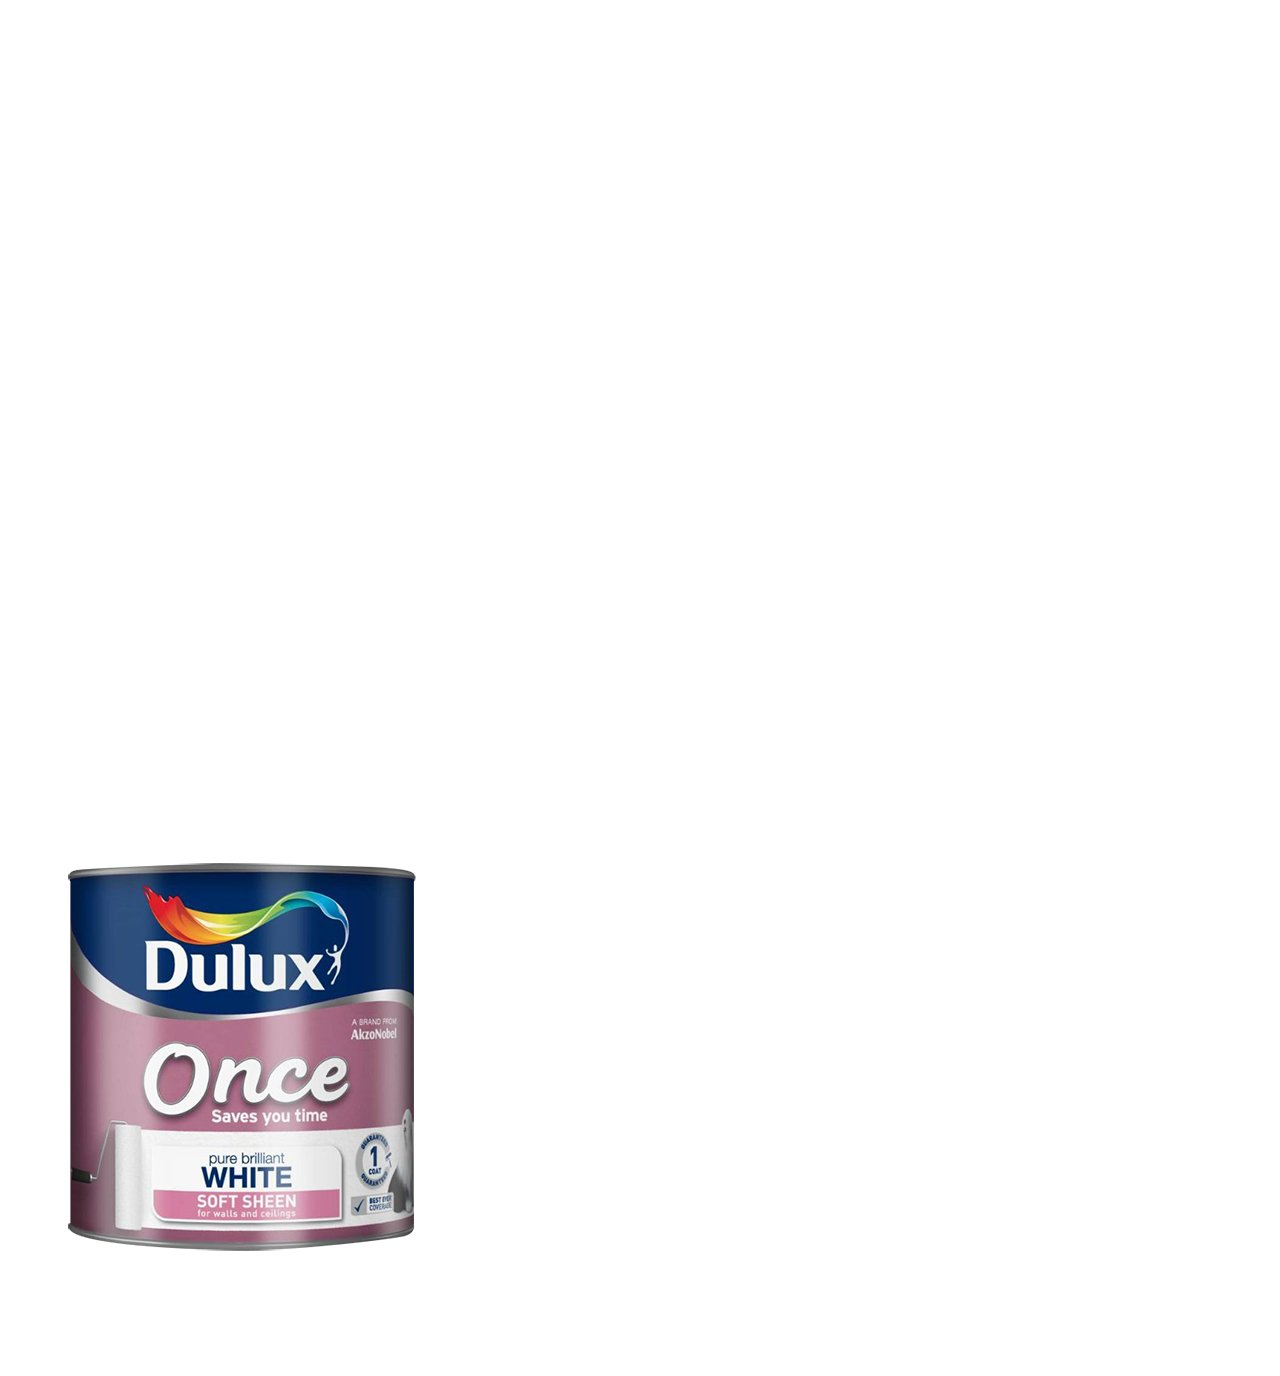 Dulux Once Soft Sheen Emulsion Paint For Walls And Ceilings - Pure Brilliant White 5L 5190989